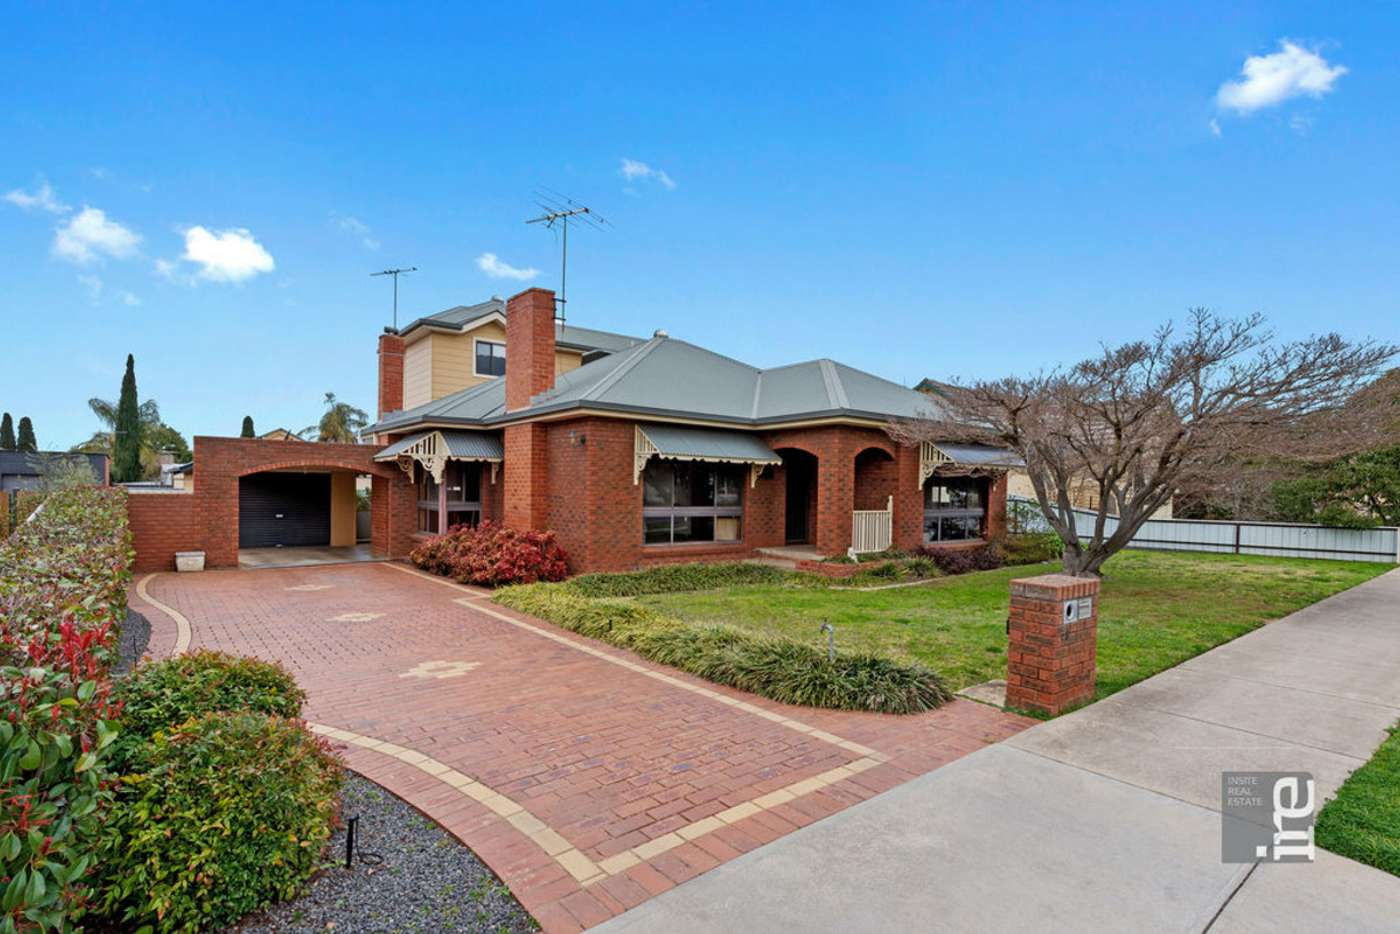 Main view of Homely house listing, 38 Phillipson Street, Wangaratta VIC 3677